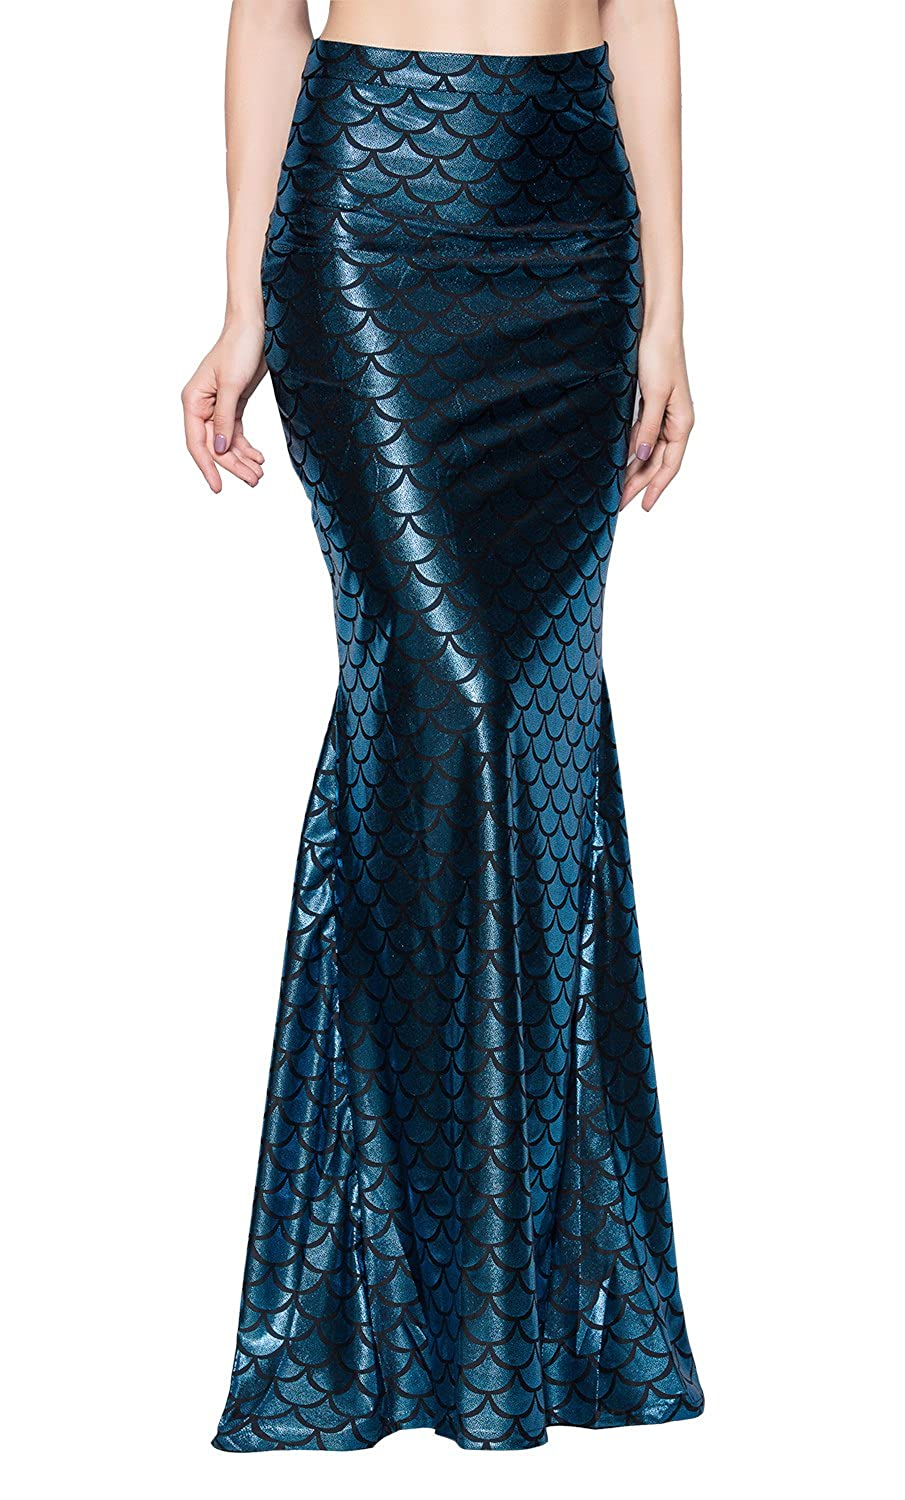 Ladies Long Iridescent Dark Blue Fish Scale Print Stretchy Flared Mermaid Skirt - DeluxeAdultCostumes.com